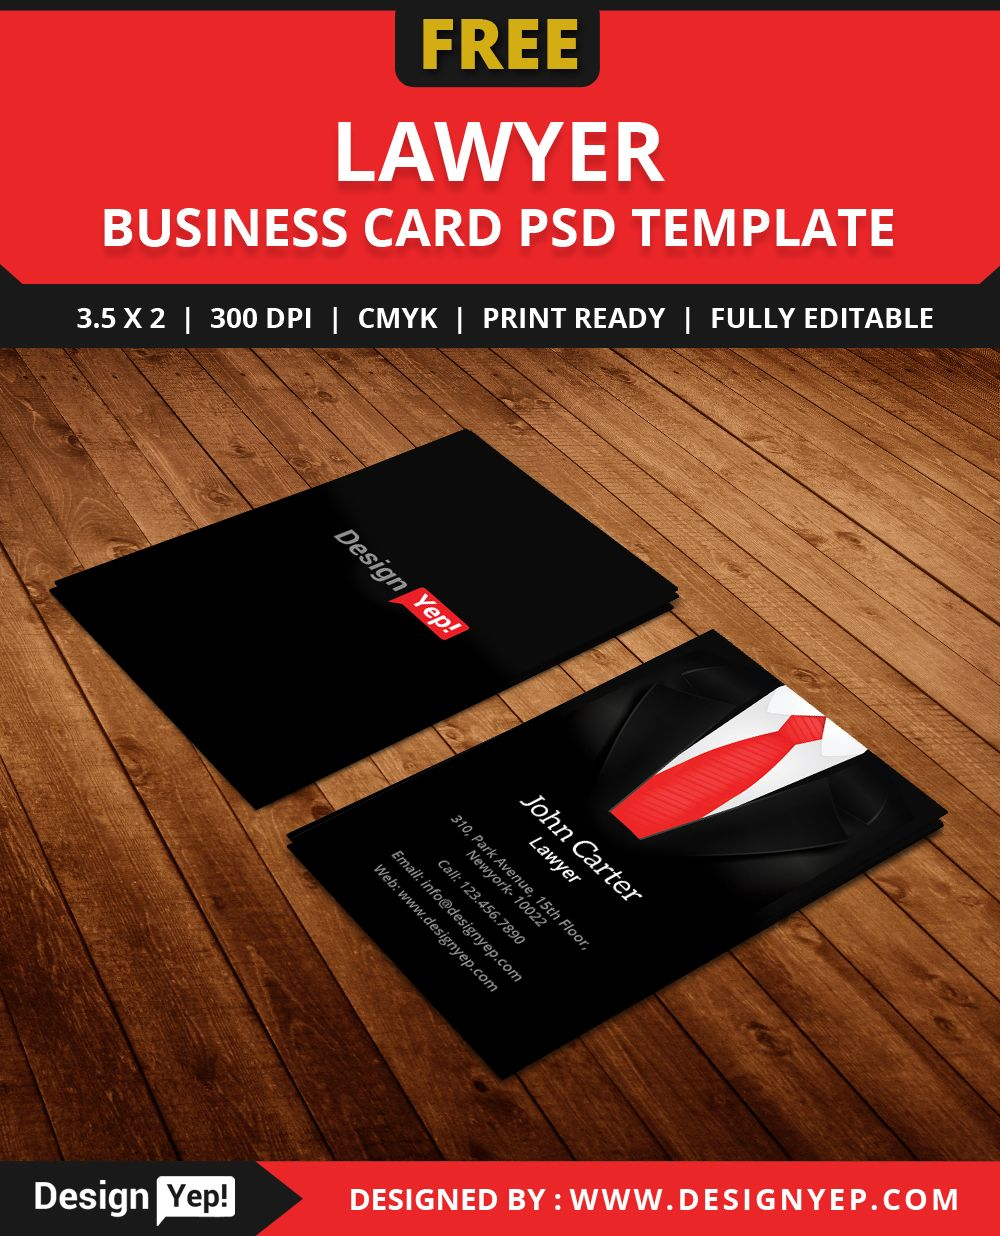 Free lawyer business card template psd free business card free lawyer business card template psd reheart